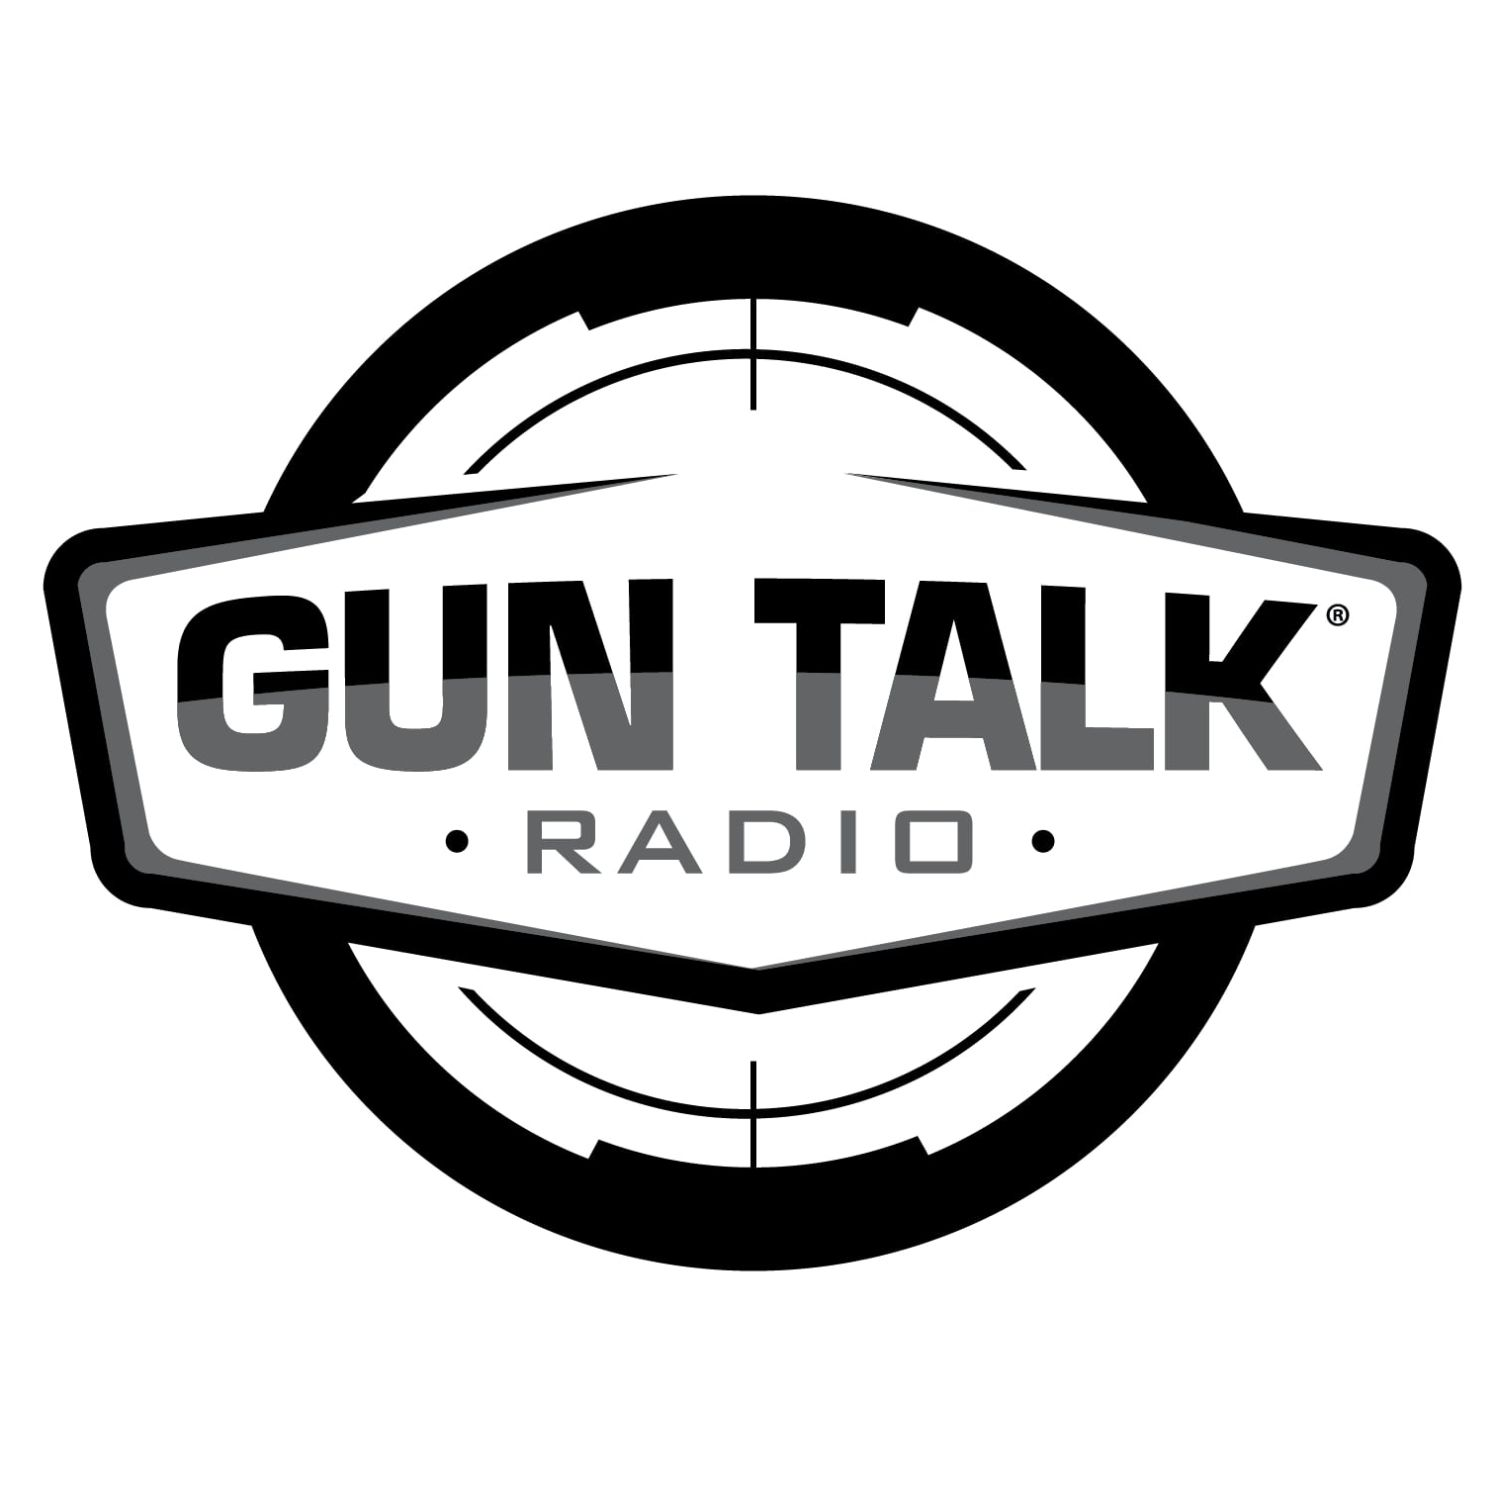 Artwork for Guntalk 2008-04-27 Part A